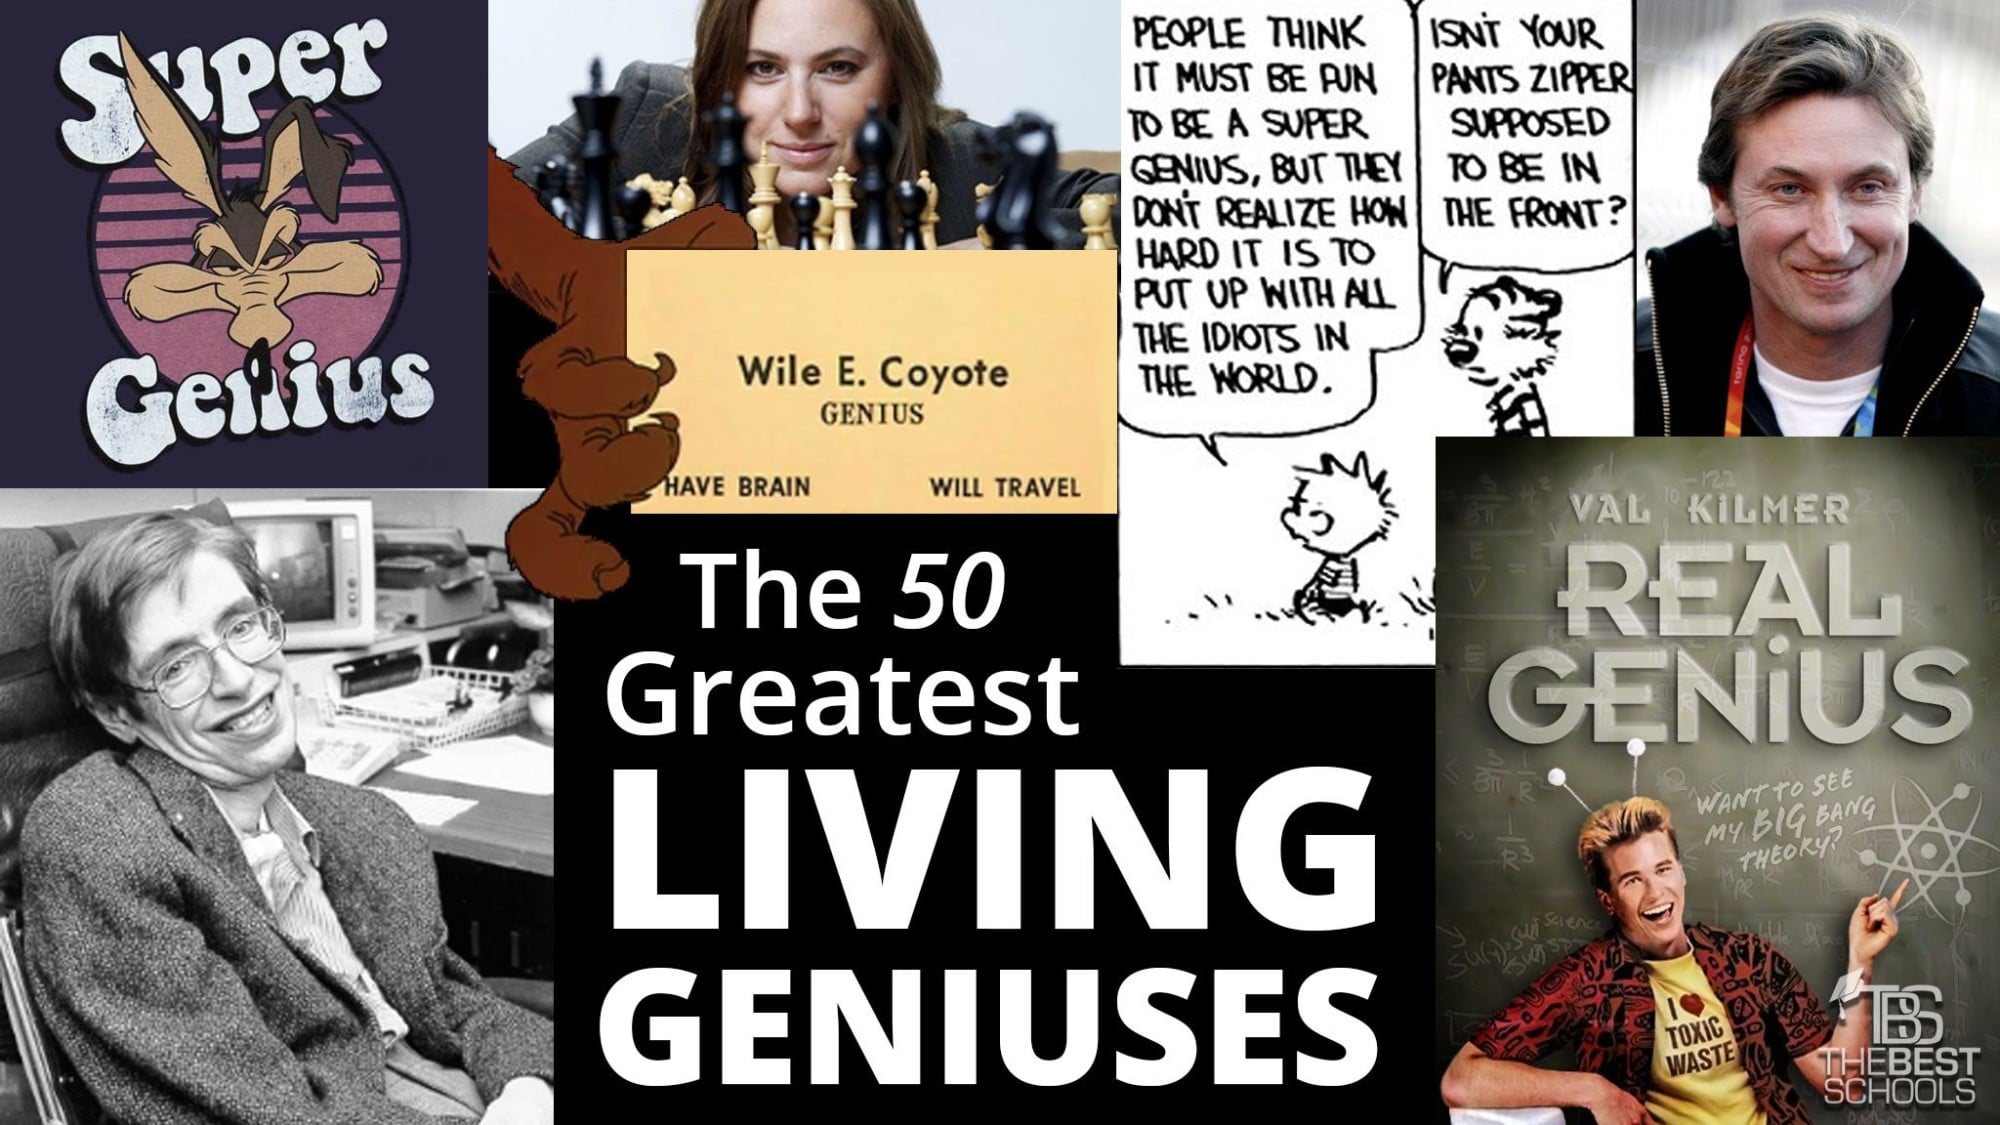 American Idiots 2013 the 50 greatest living geniuses | thebestschools